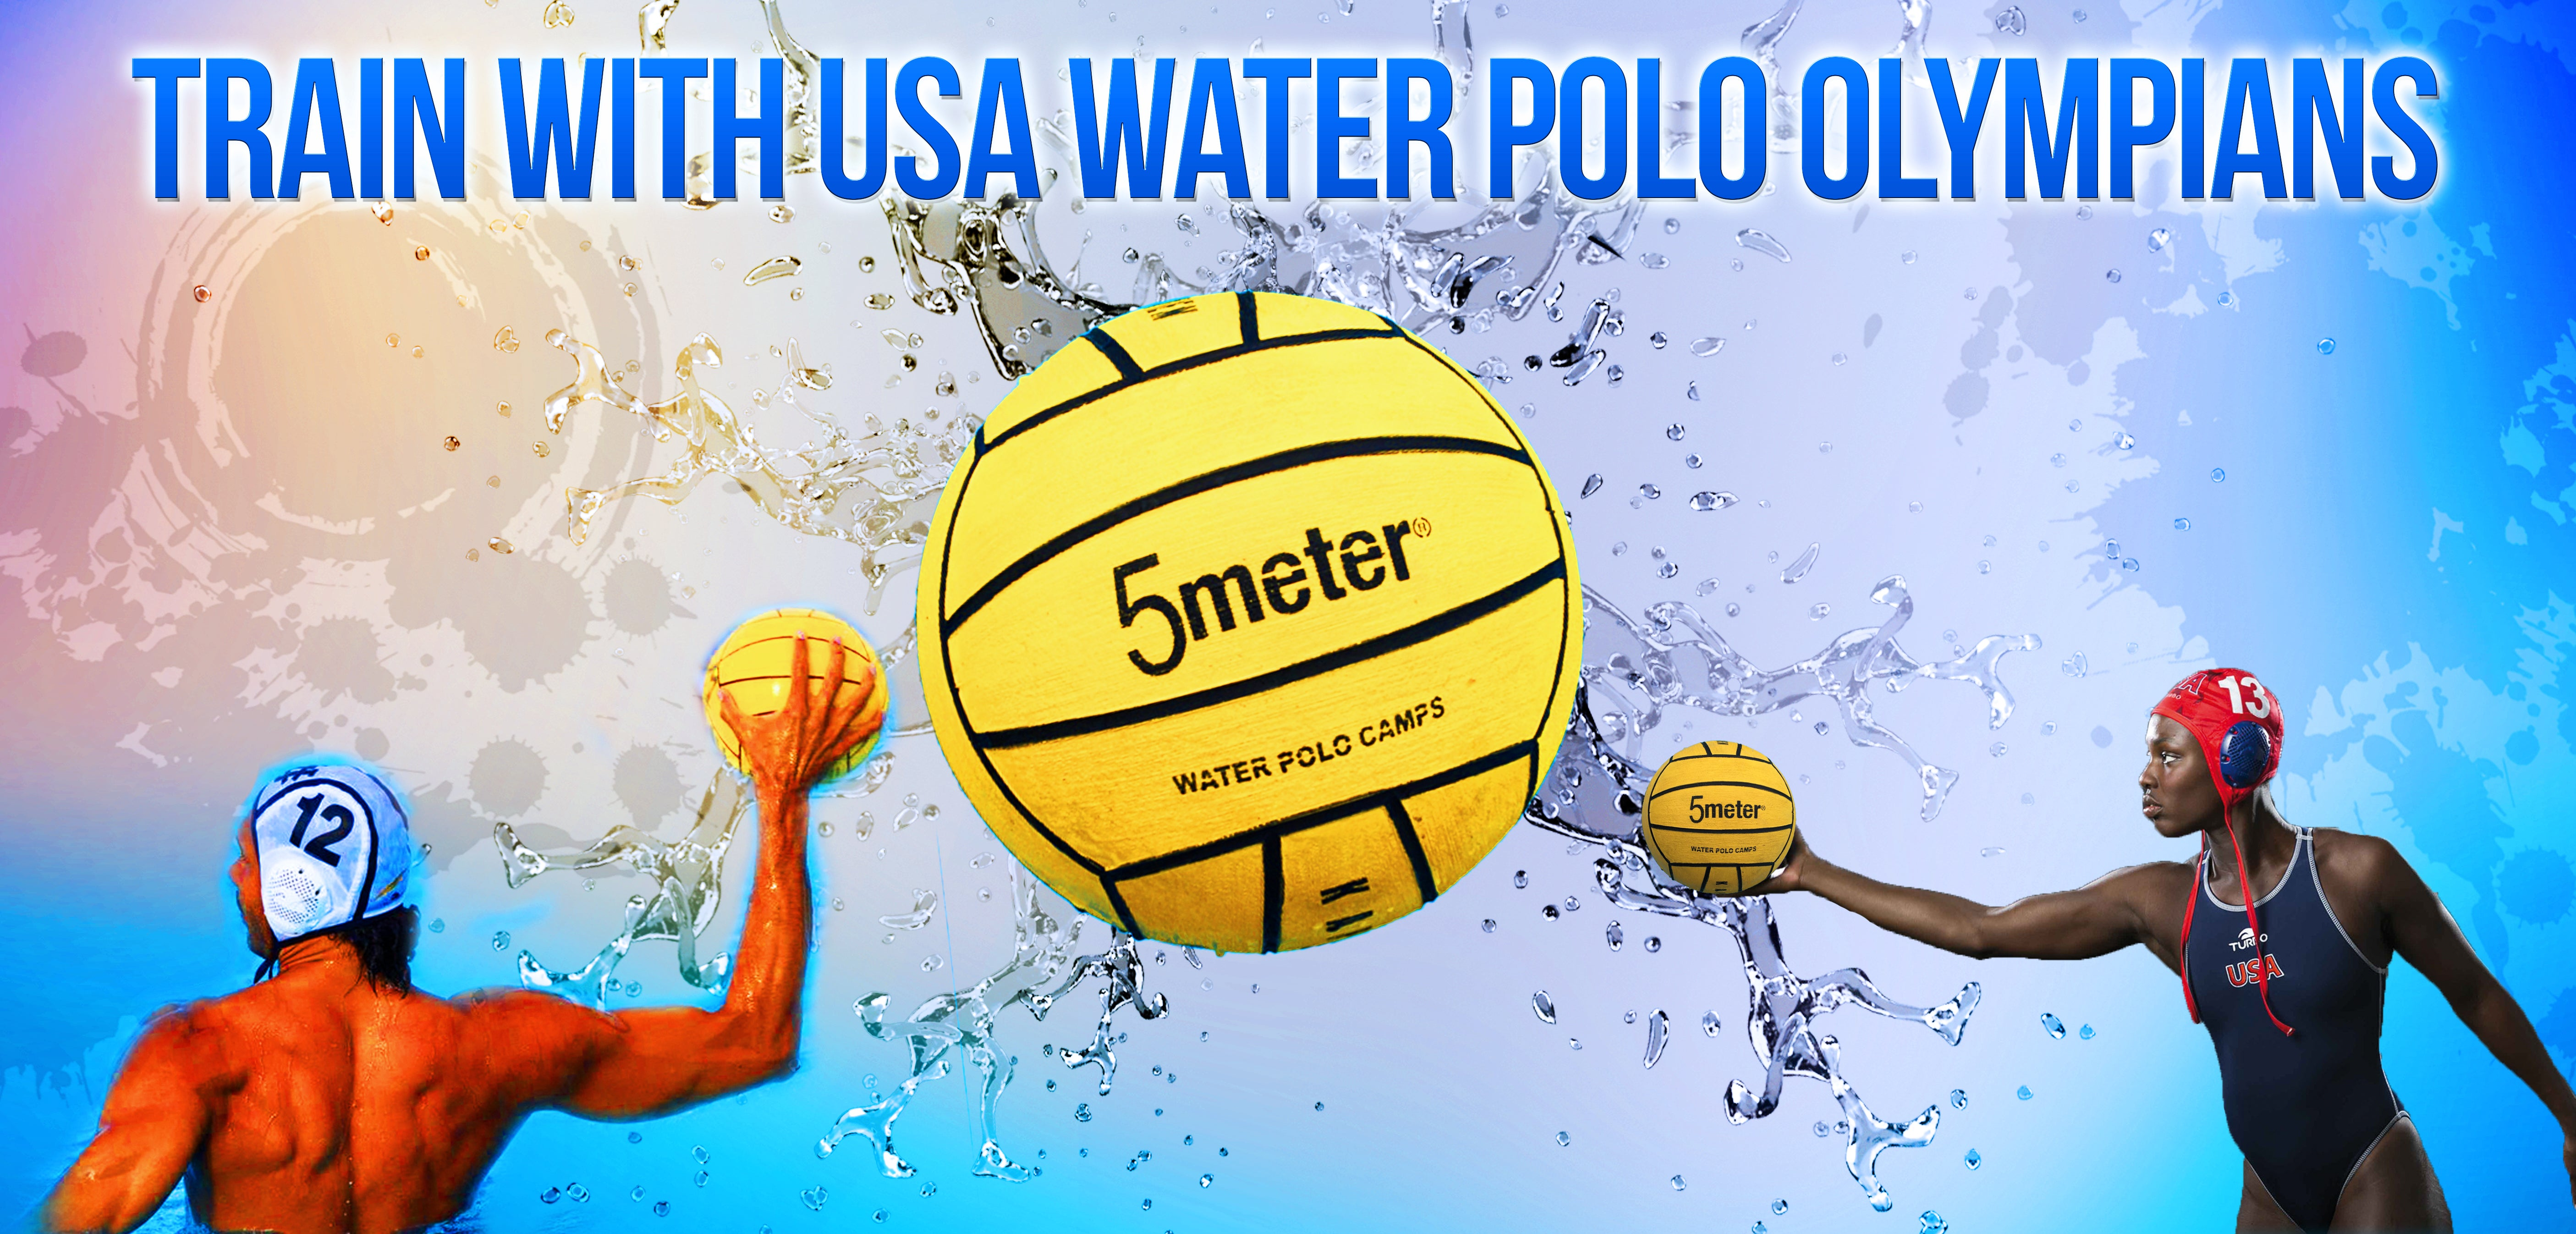 Train with USA Water Polo Olympians